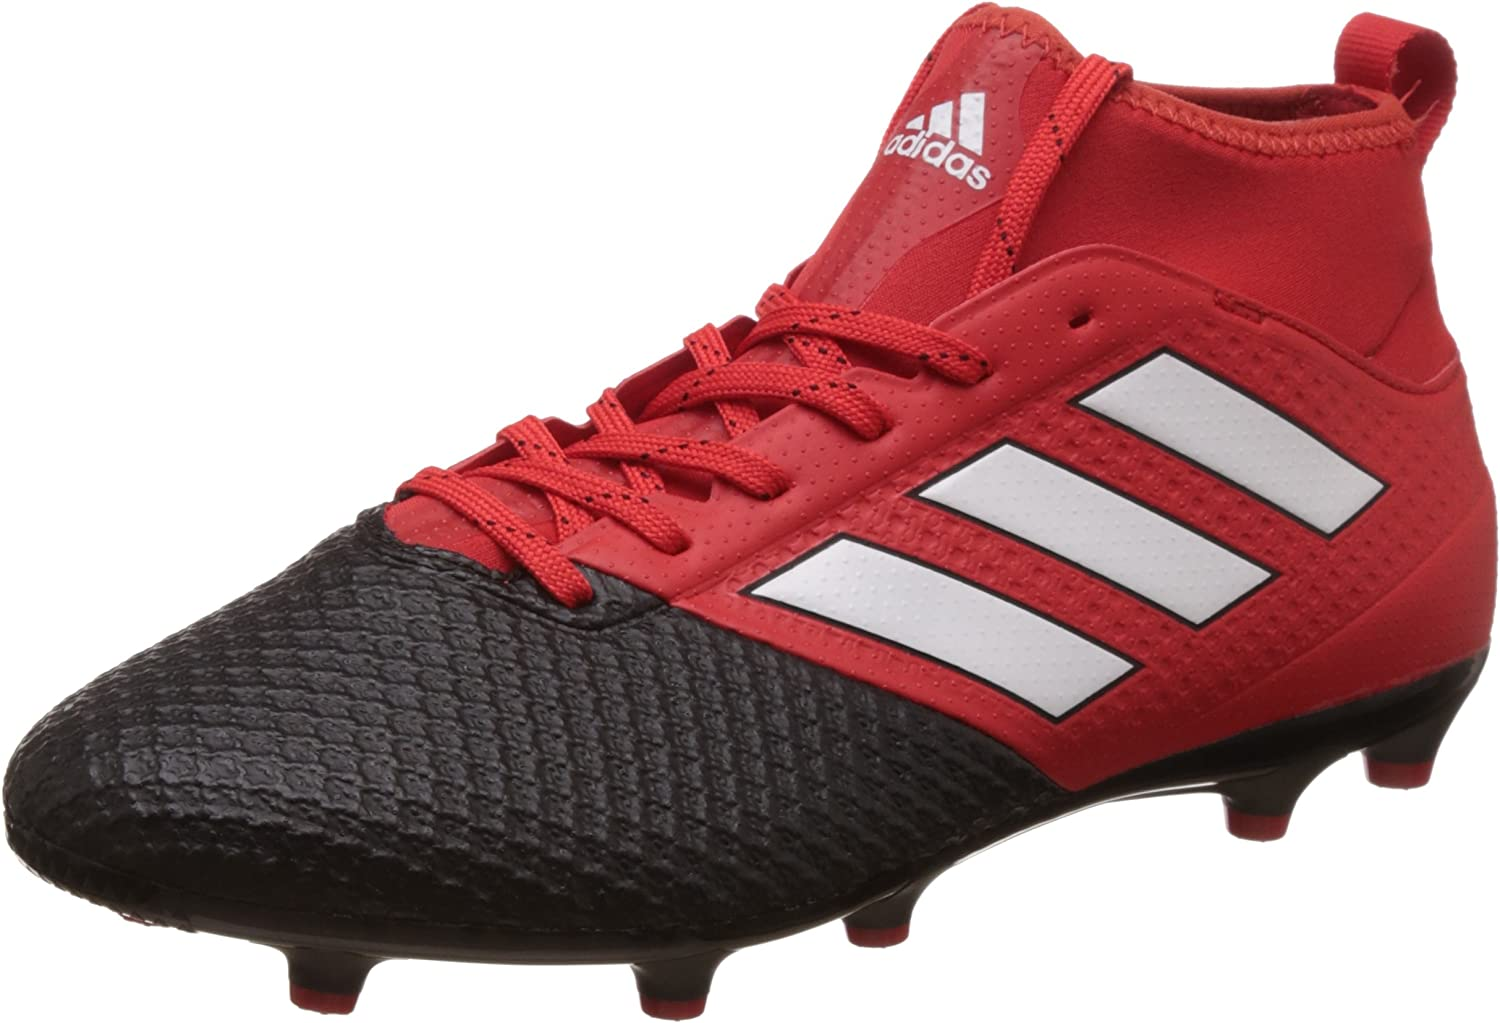 muy empezar Esperar algo  Amazon.com: adidas ACE 17.3 Primemesh FG Football Boots - Adult -  Red/Footwear White/Core Black - UK 10: Sports & Outdoors